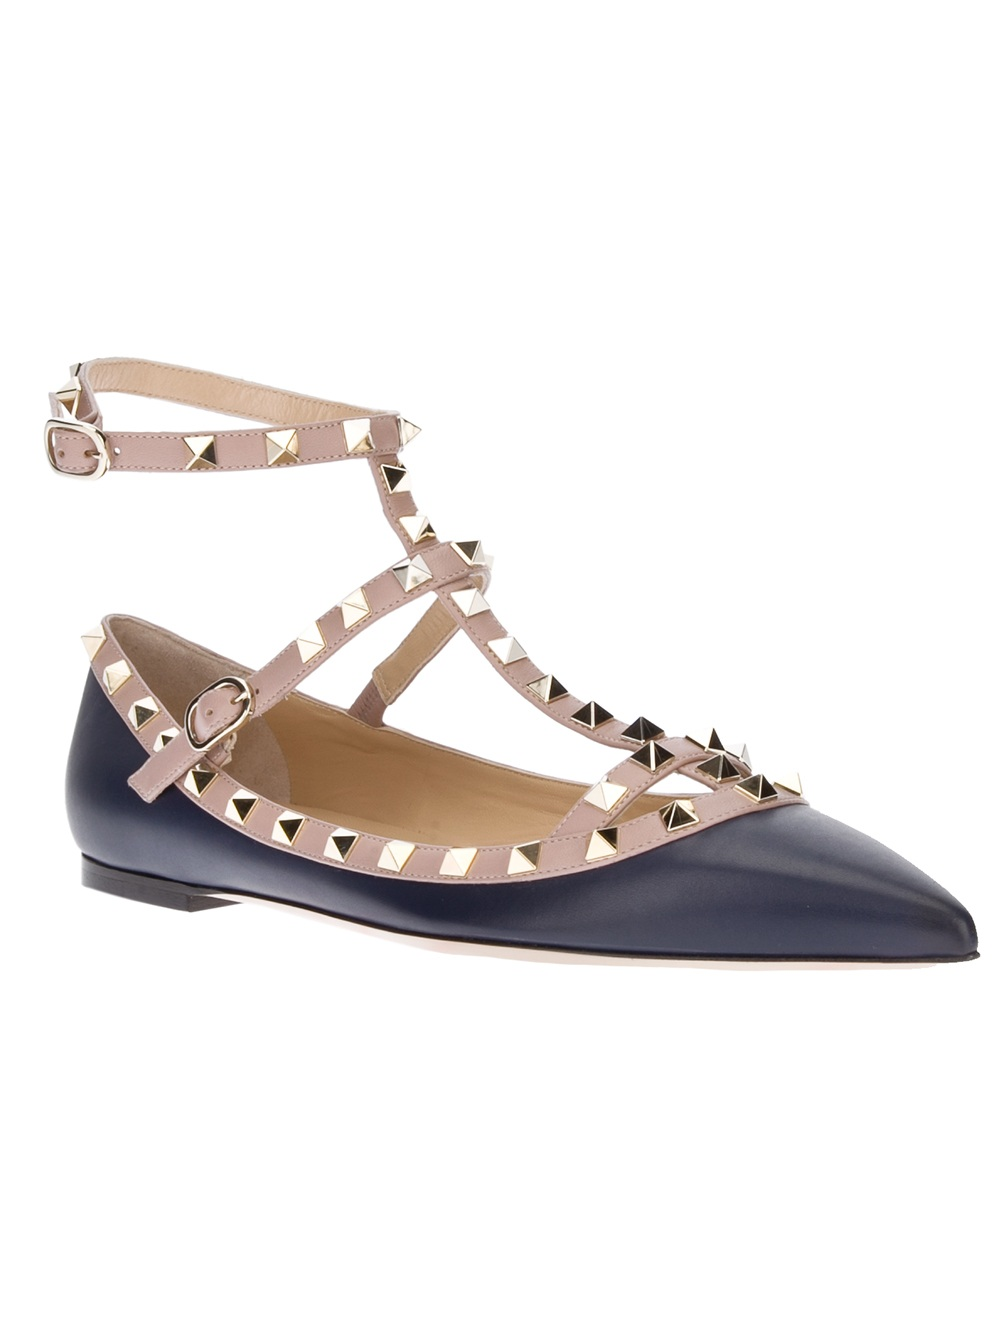 Valentino Rockstud Flat Shoes Sale